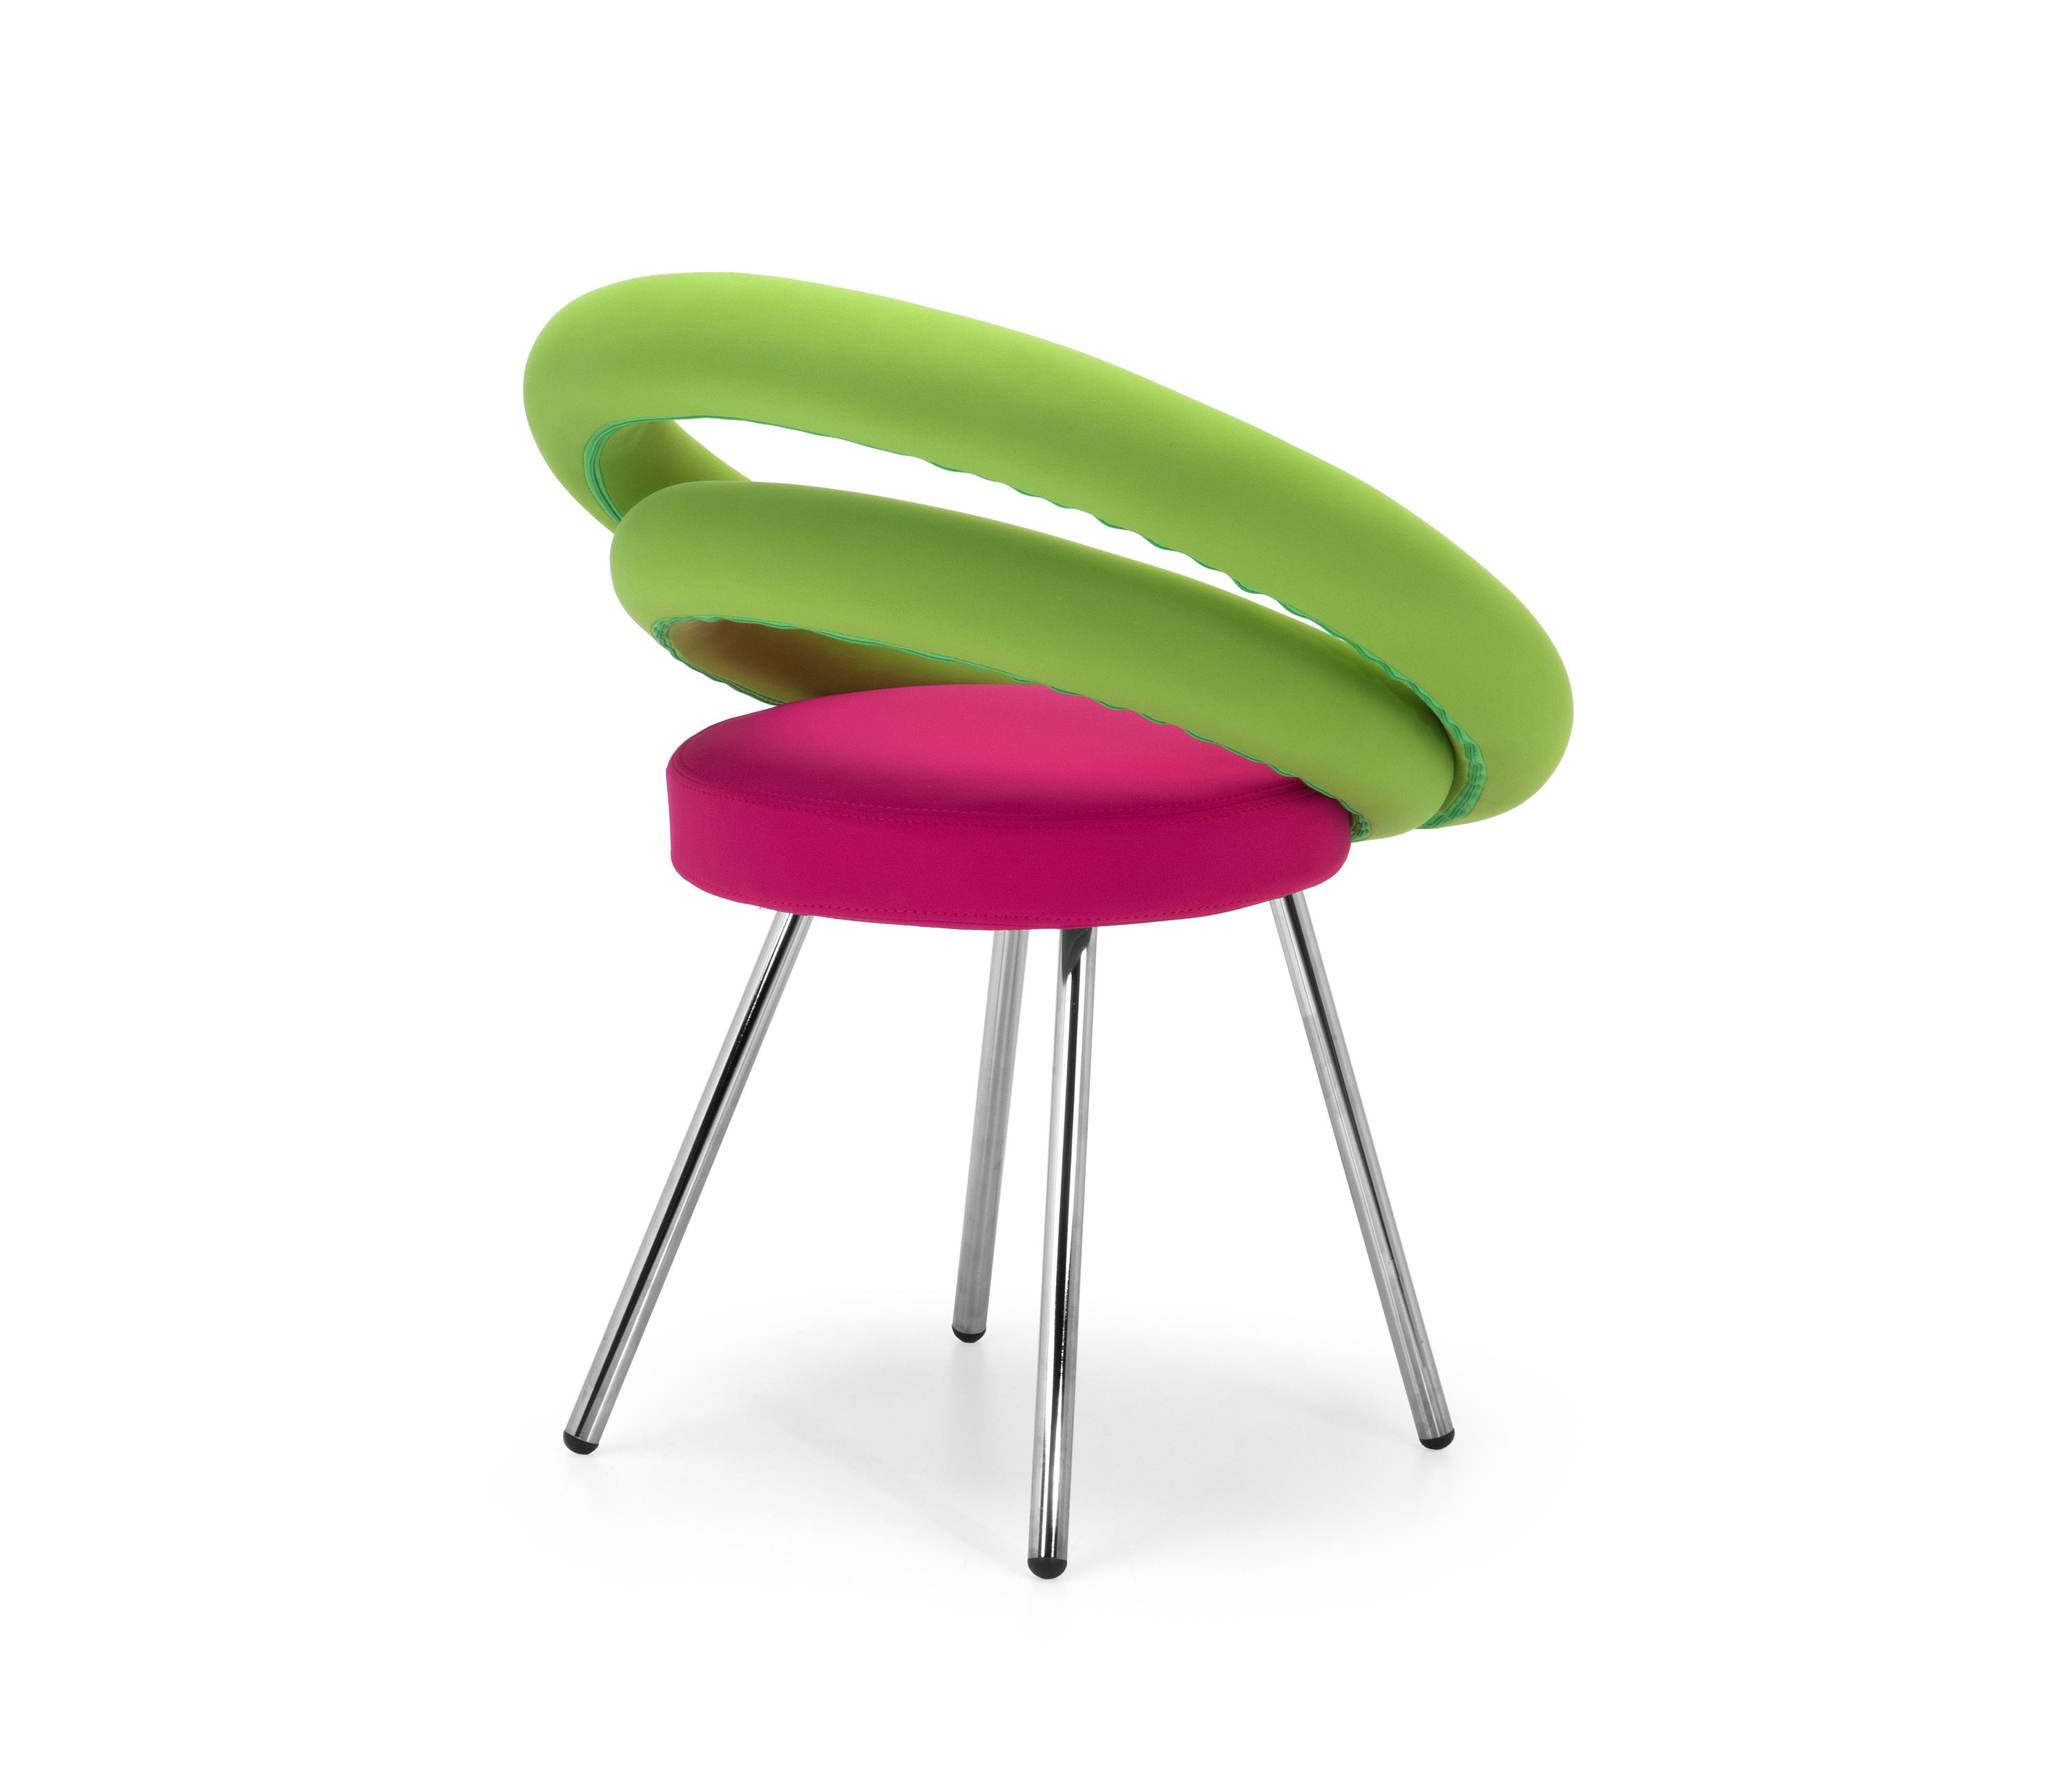 CIRCLE 1S Lounge chairs from Adrenalina